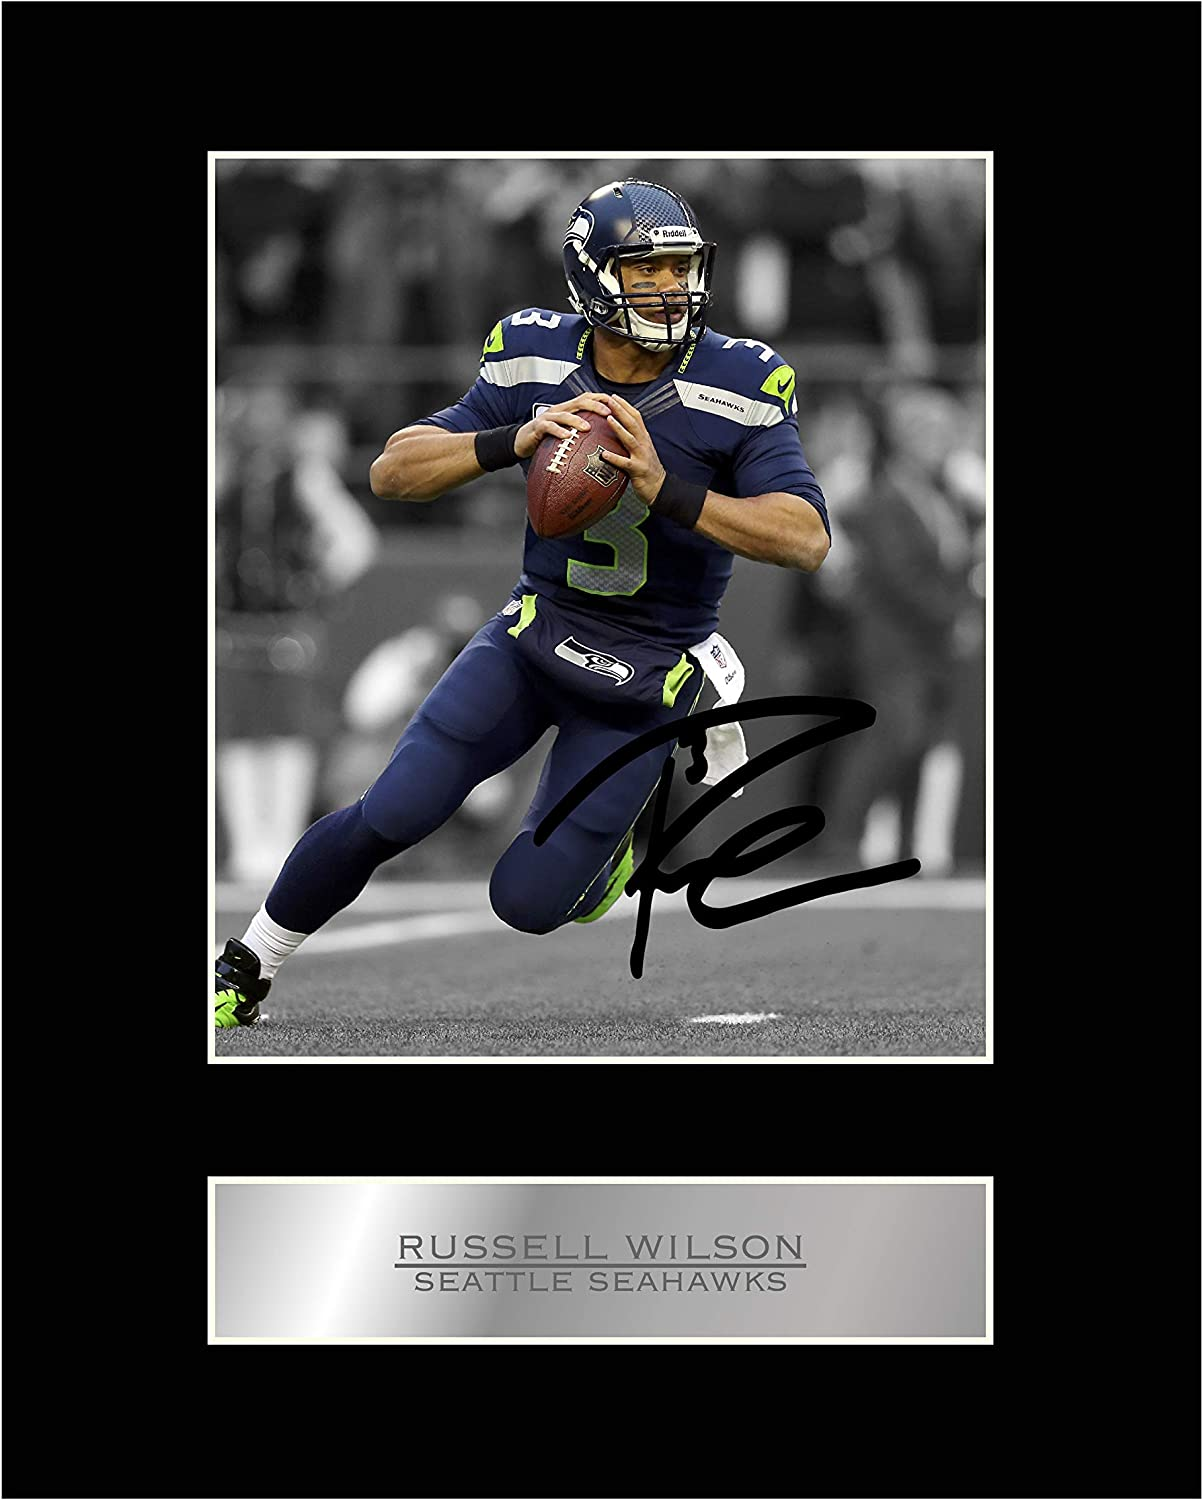 RUSSELL WILSON Seattle Seahawks Canvas Poster Photo Painting on CANVAS Wall Art